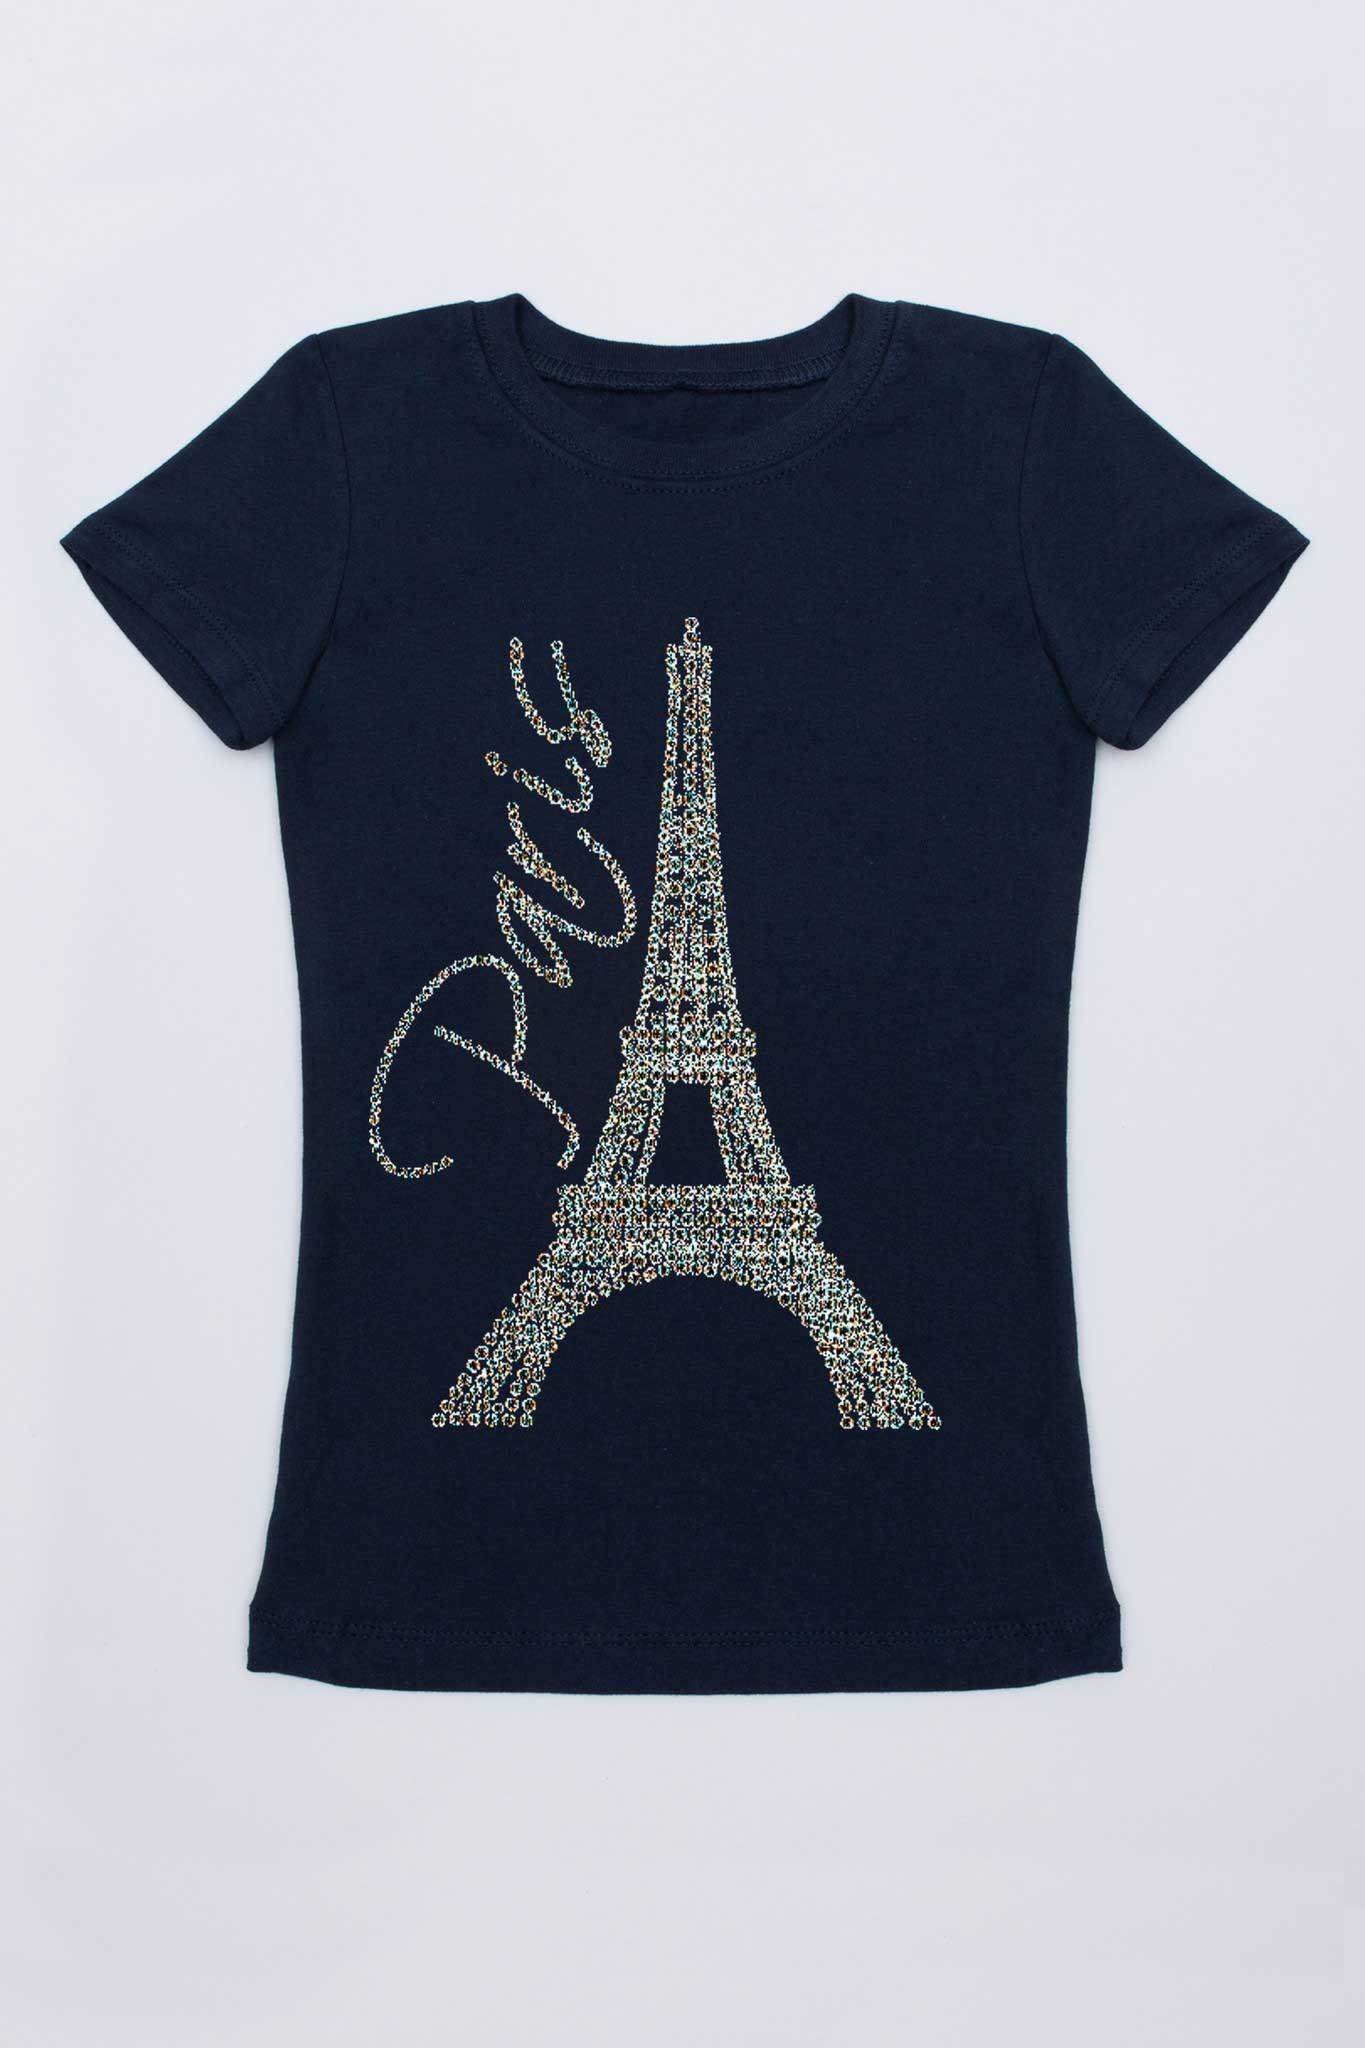 Paris Tee - Girls